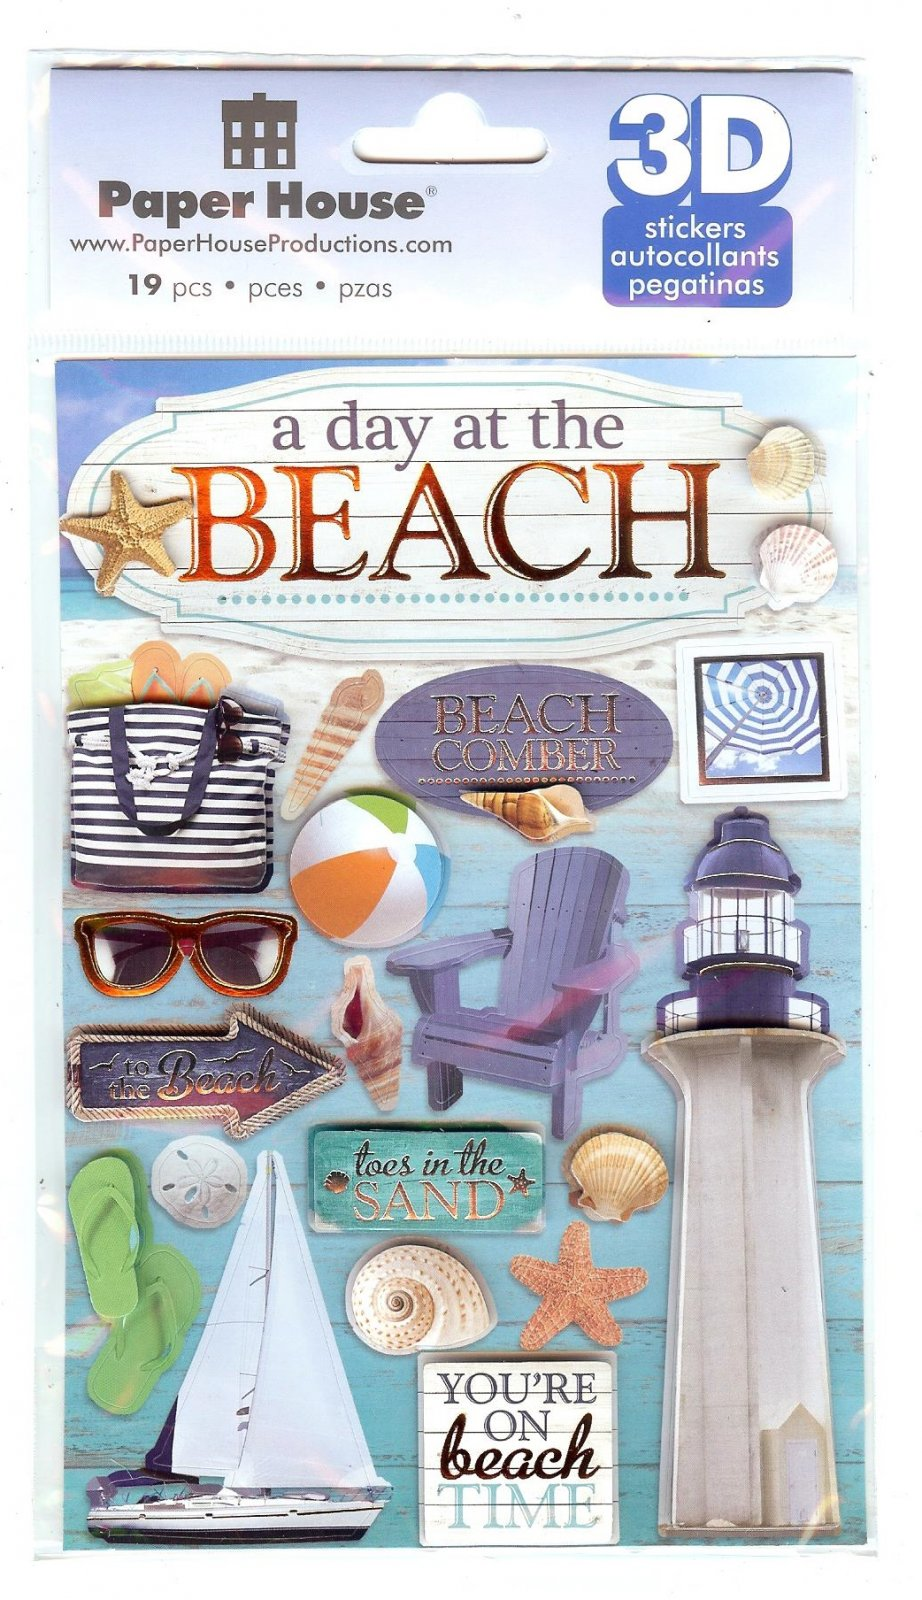 Paper House Travel 3D Stickers - A Day at the Beach